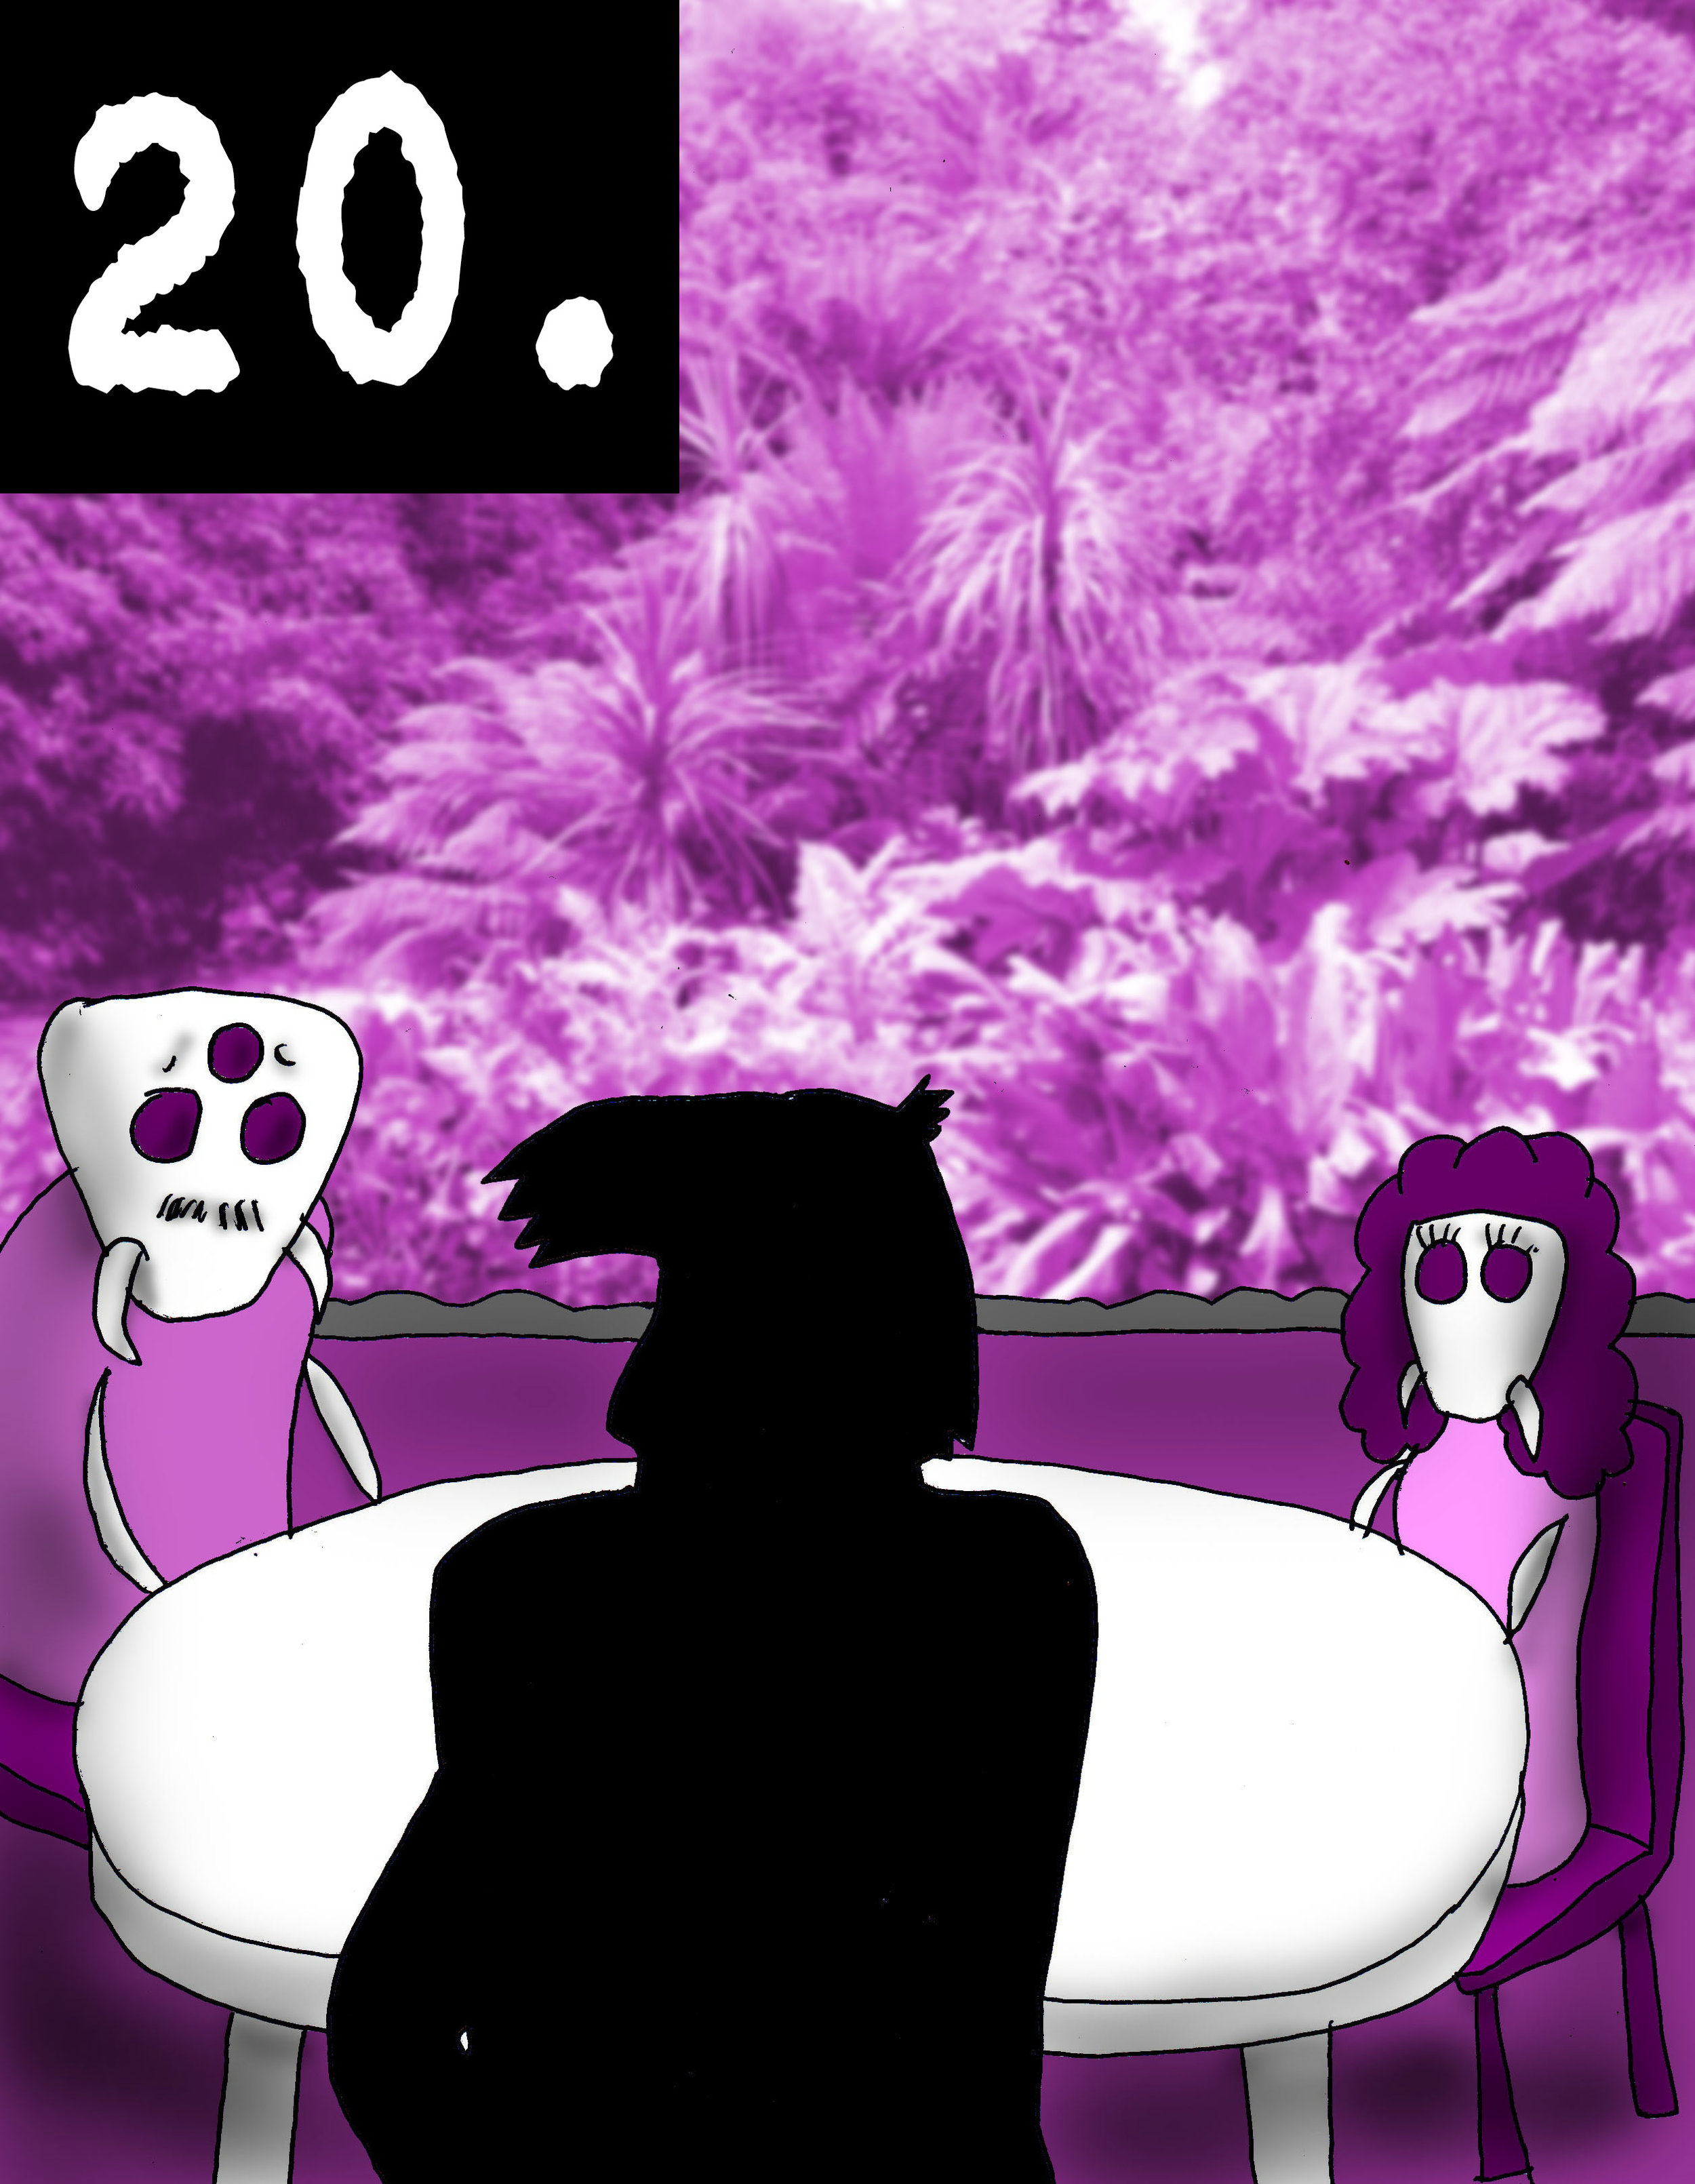 relief20_cover.jpg